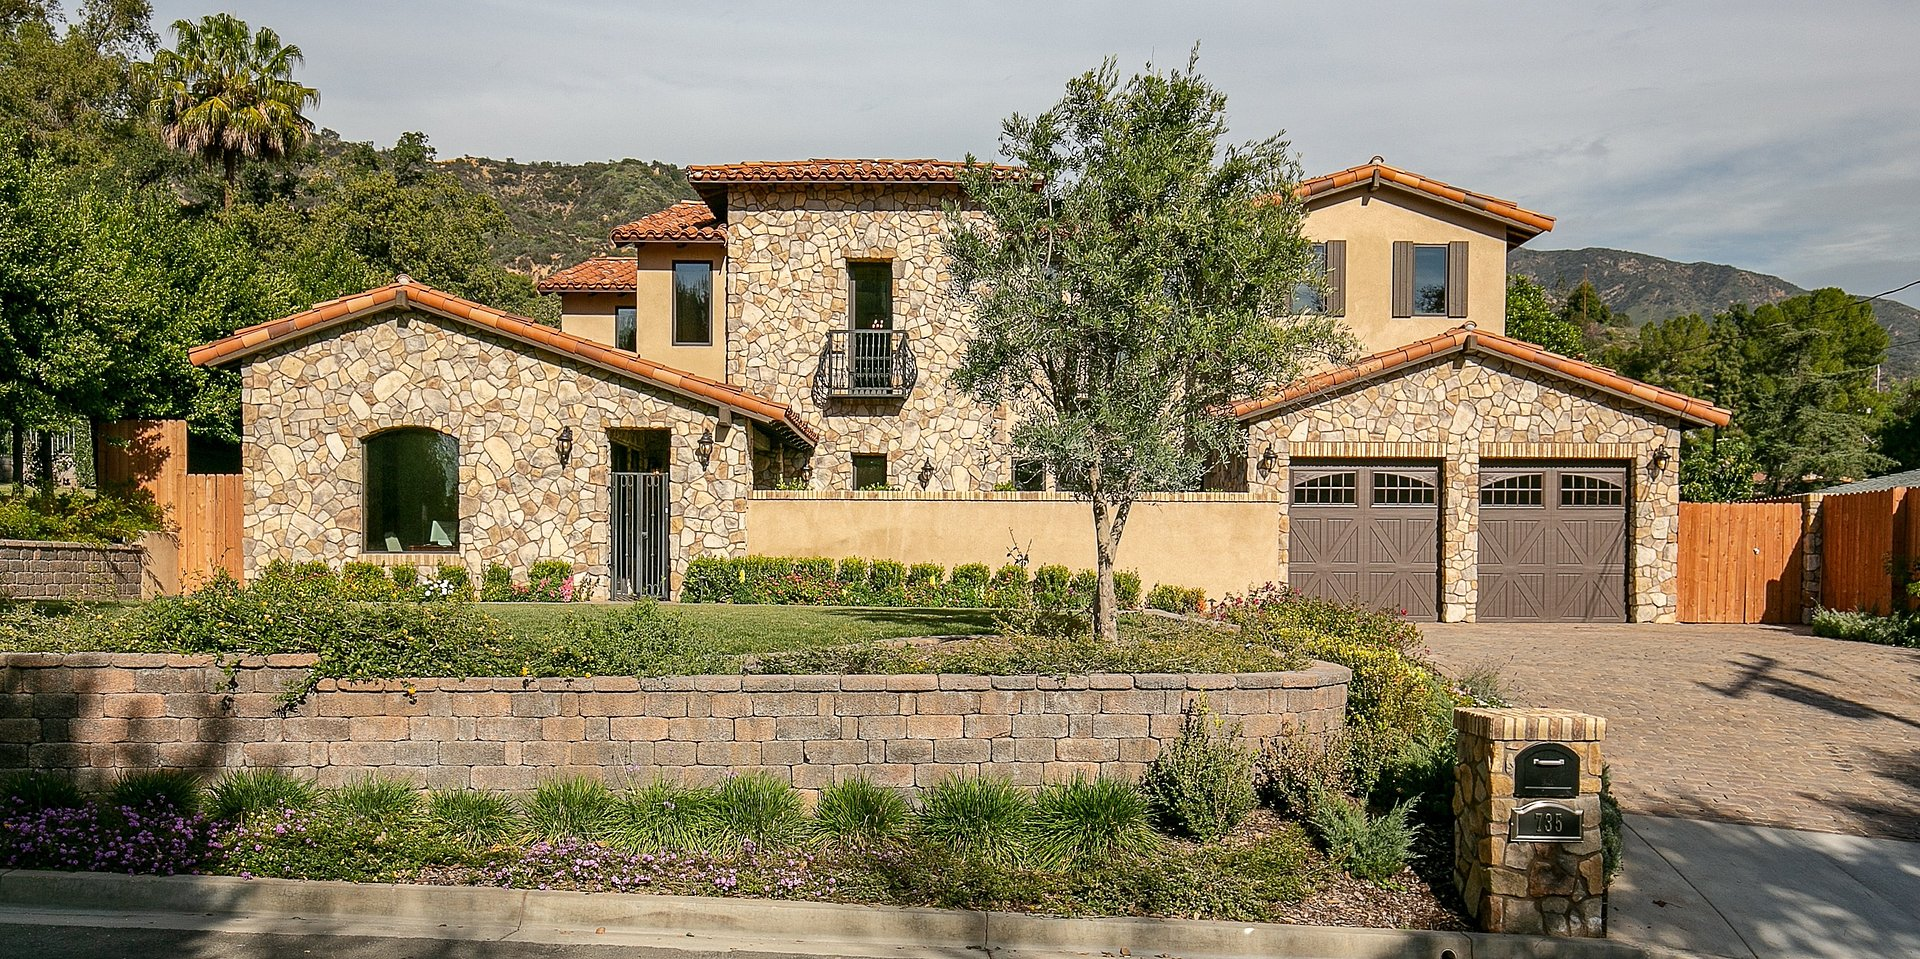 Coldwell Banker Residential Brokerage Lists Monrovia Property for $2.049 Million